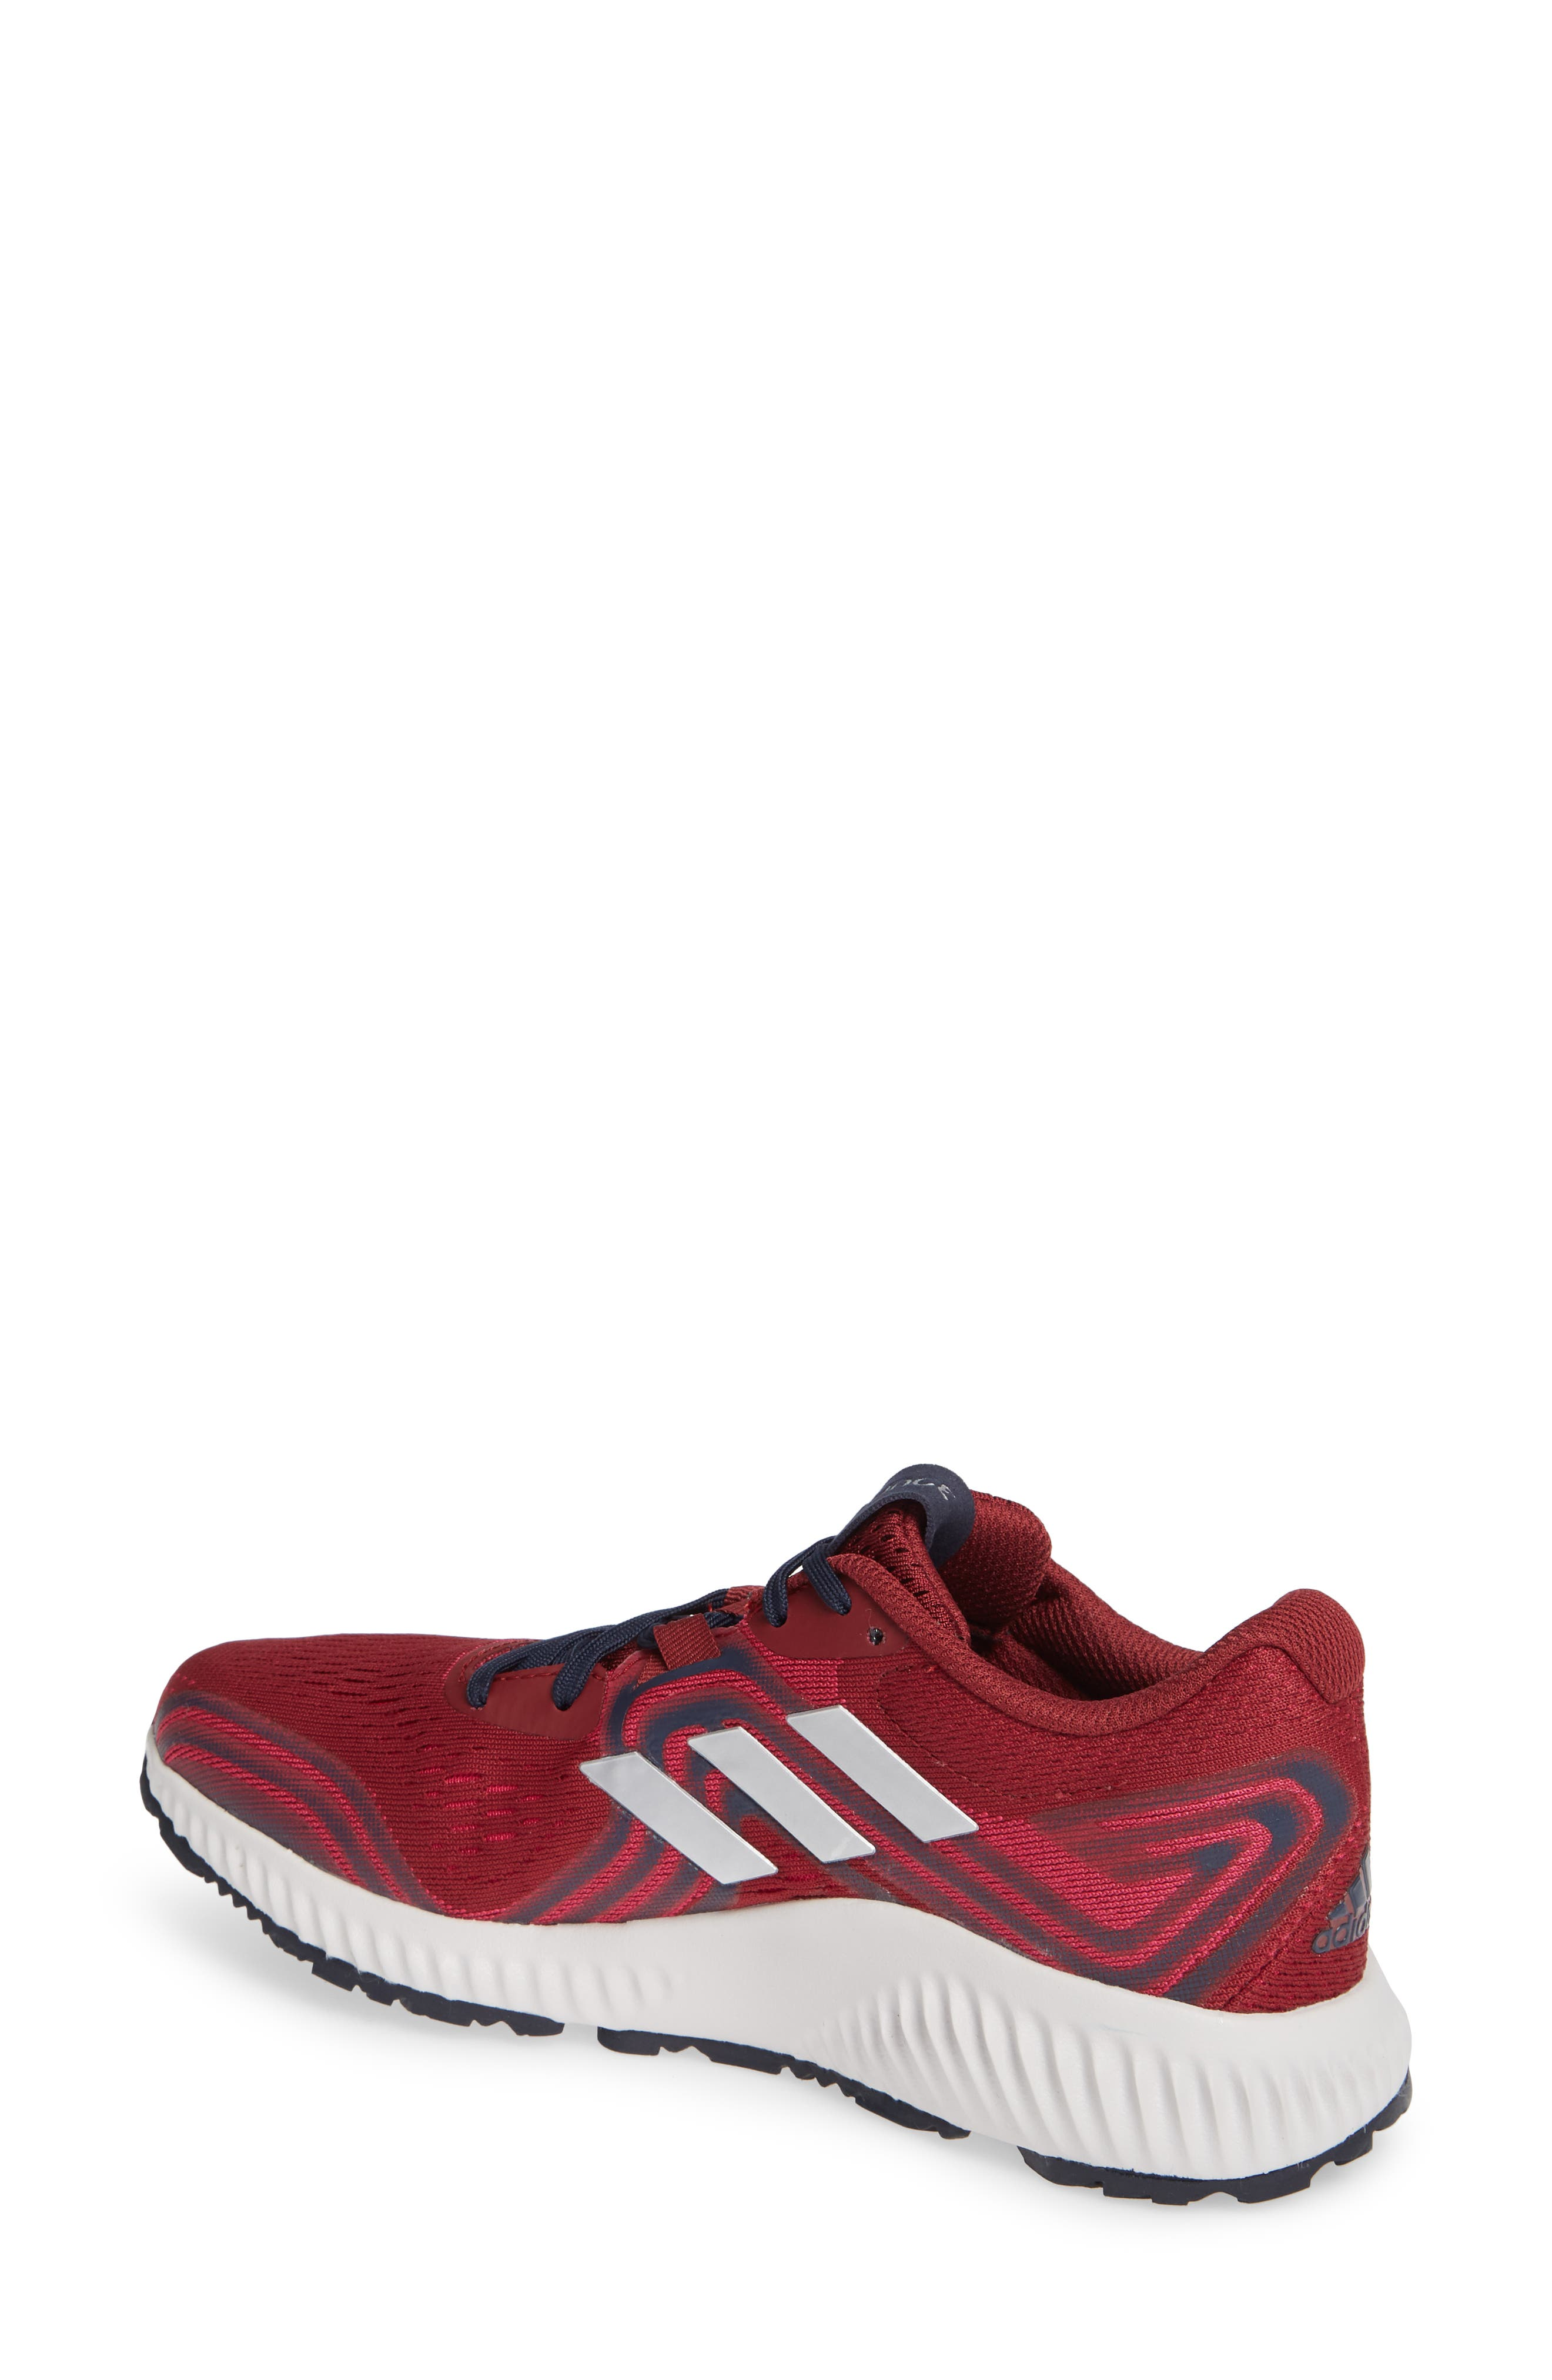 AeroBounce 2 Running Shoe,                             Alternate thumbnail 2, color,                             NOBLE MAROON/ SILVER/ MAGENTA